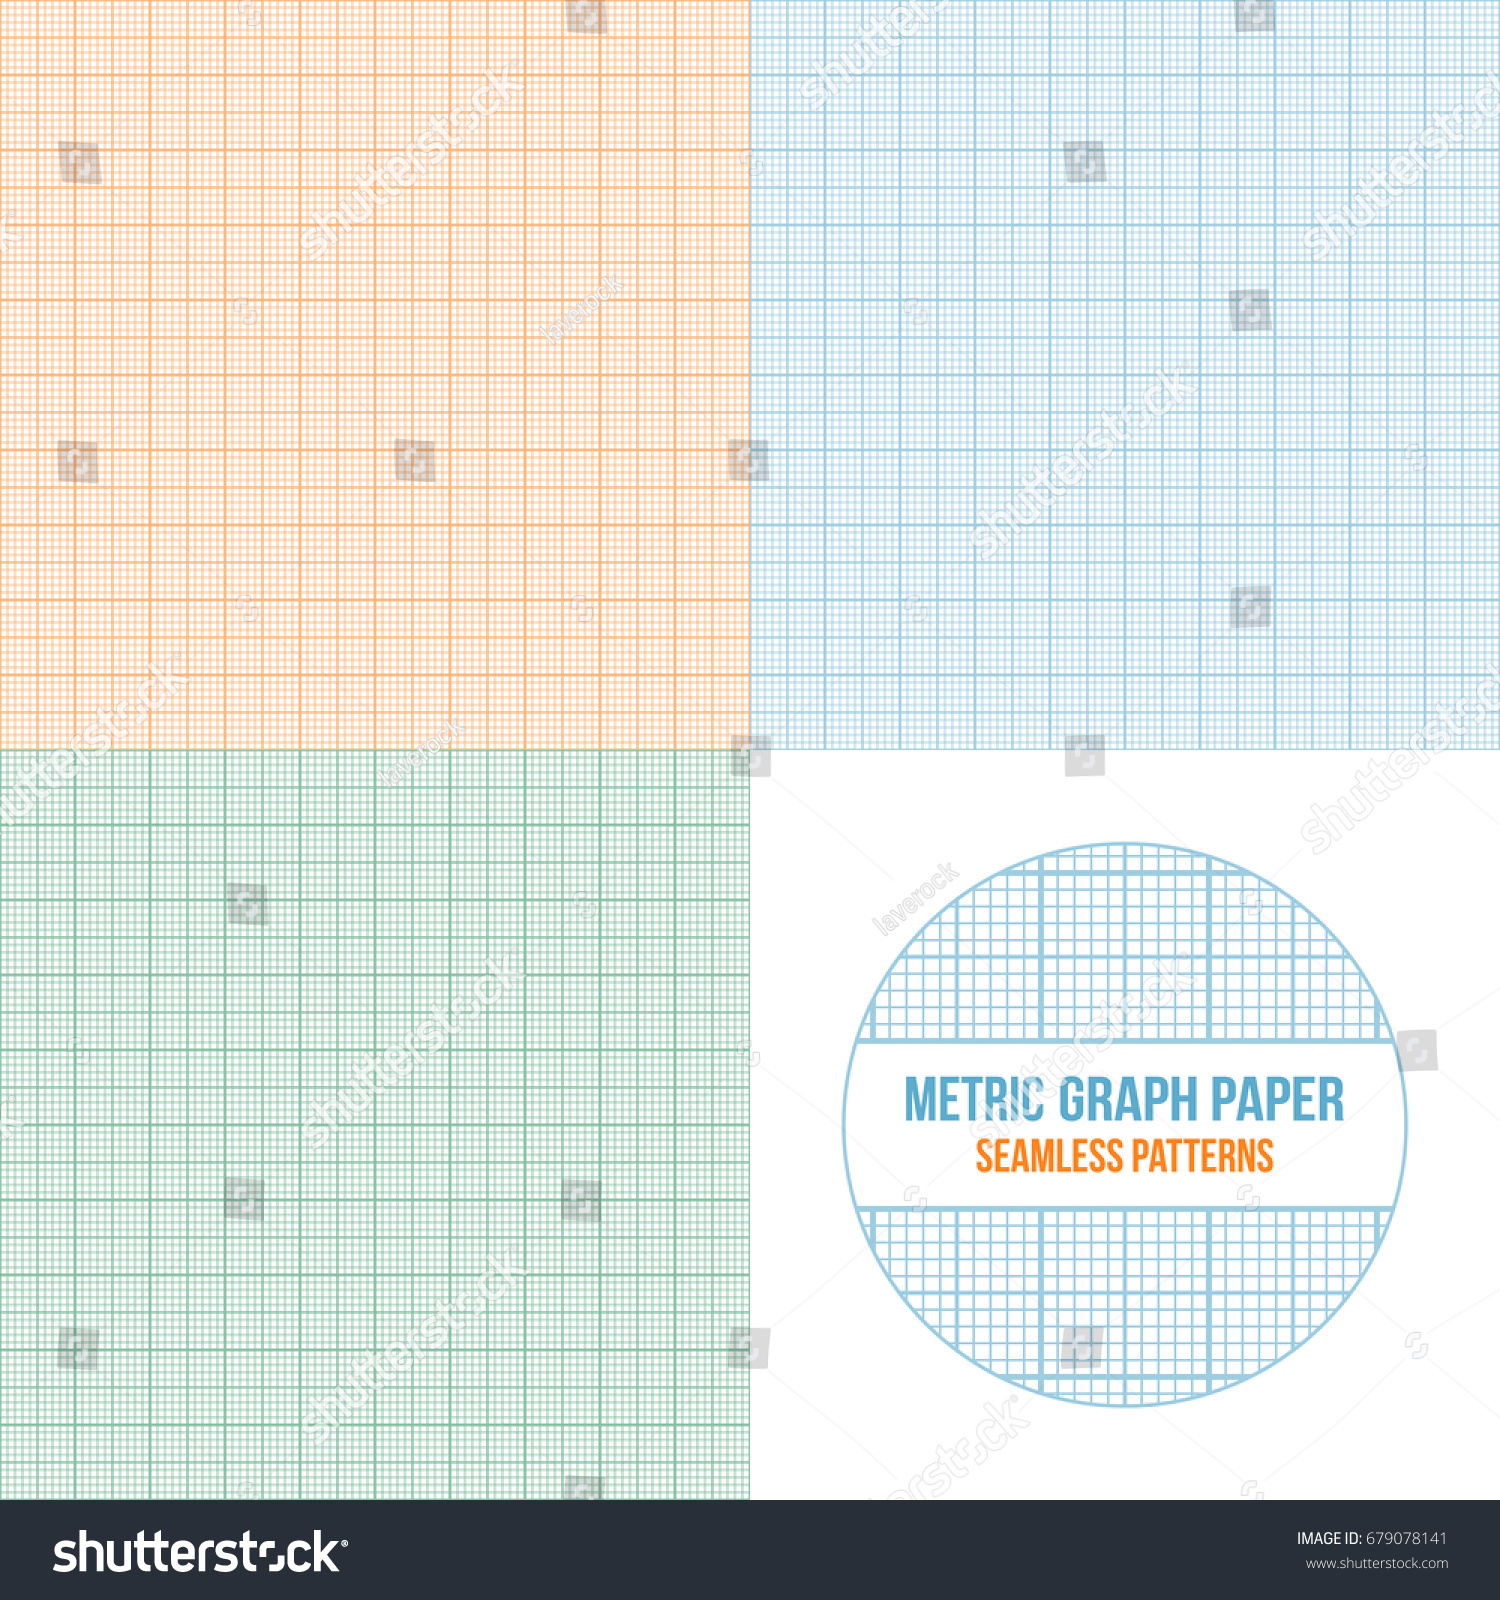 vector metric graph paper seamless patterns stock vector royalty